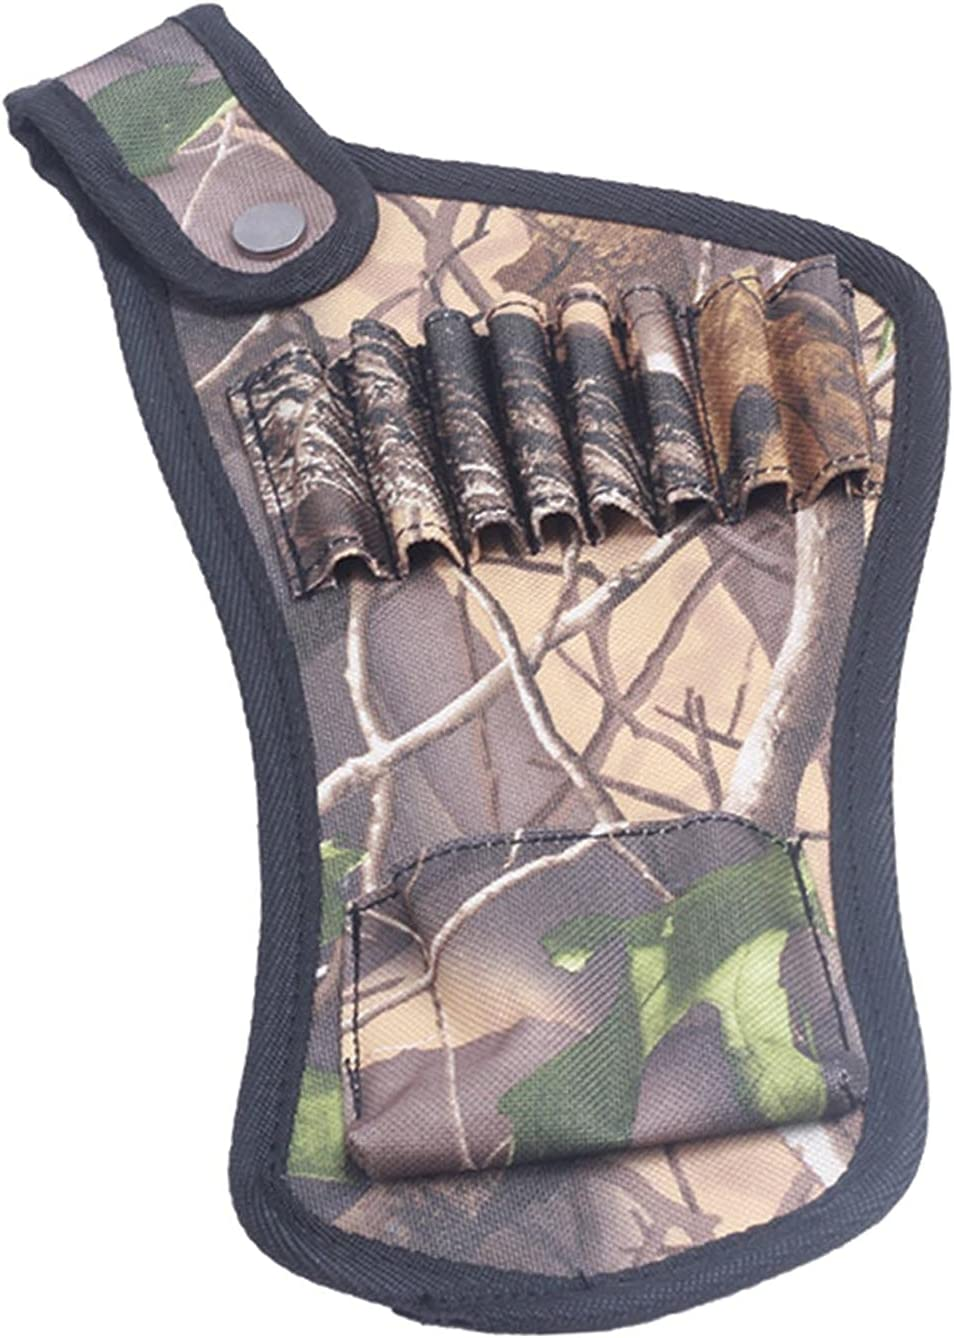 Fancyes Archery Arrow Direct sale of manufacturer Quiver Holder Targets Shooting Outstanding Hun Bag for